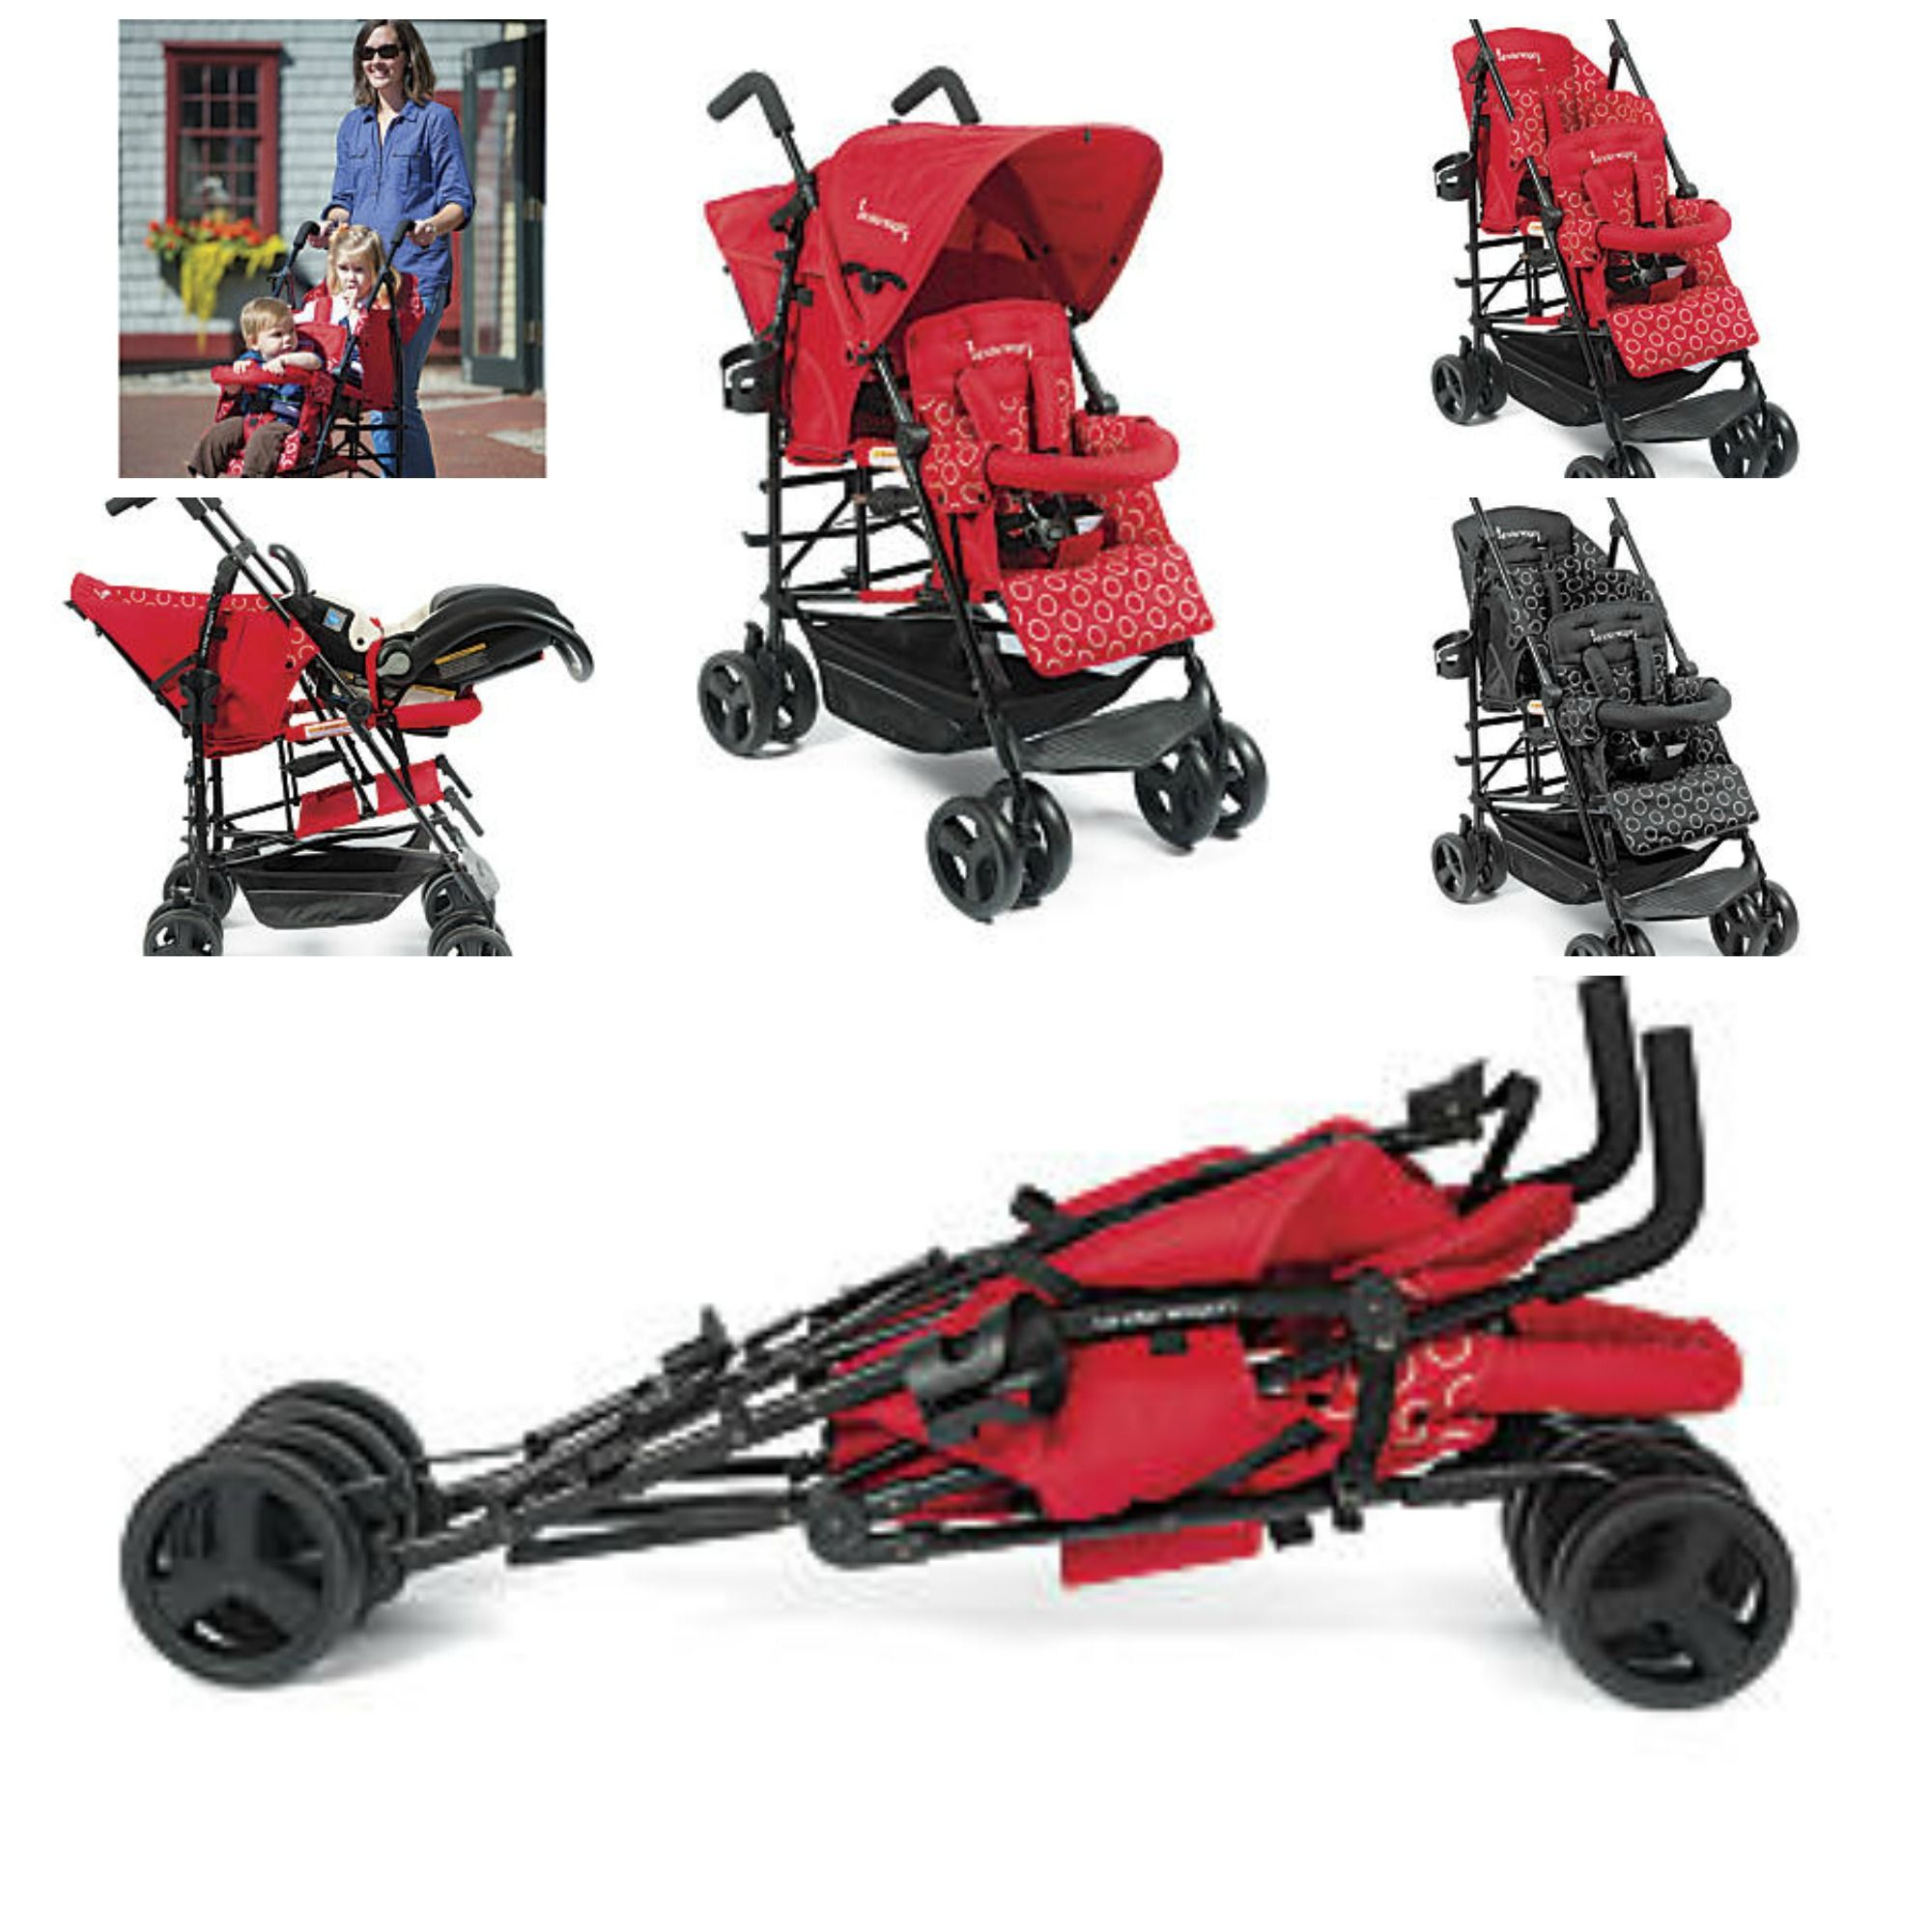 Hop Tandem Umbrella Stroller: Every parent of two needs a compact ...